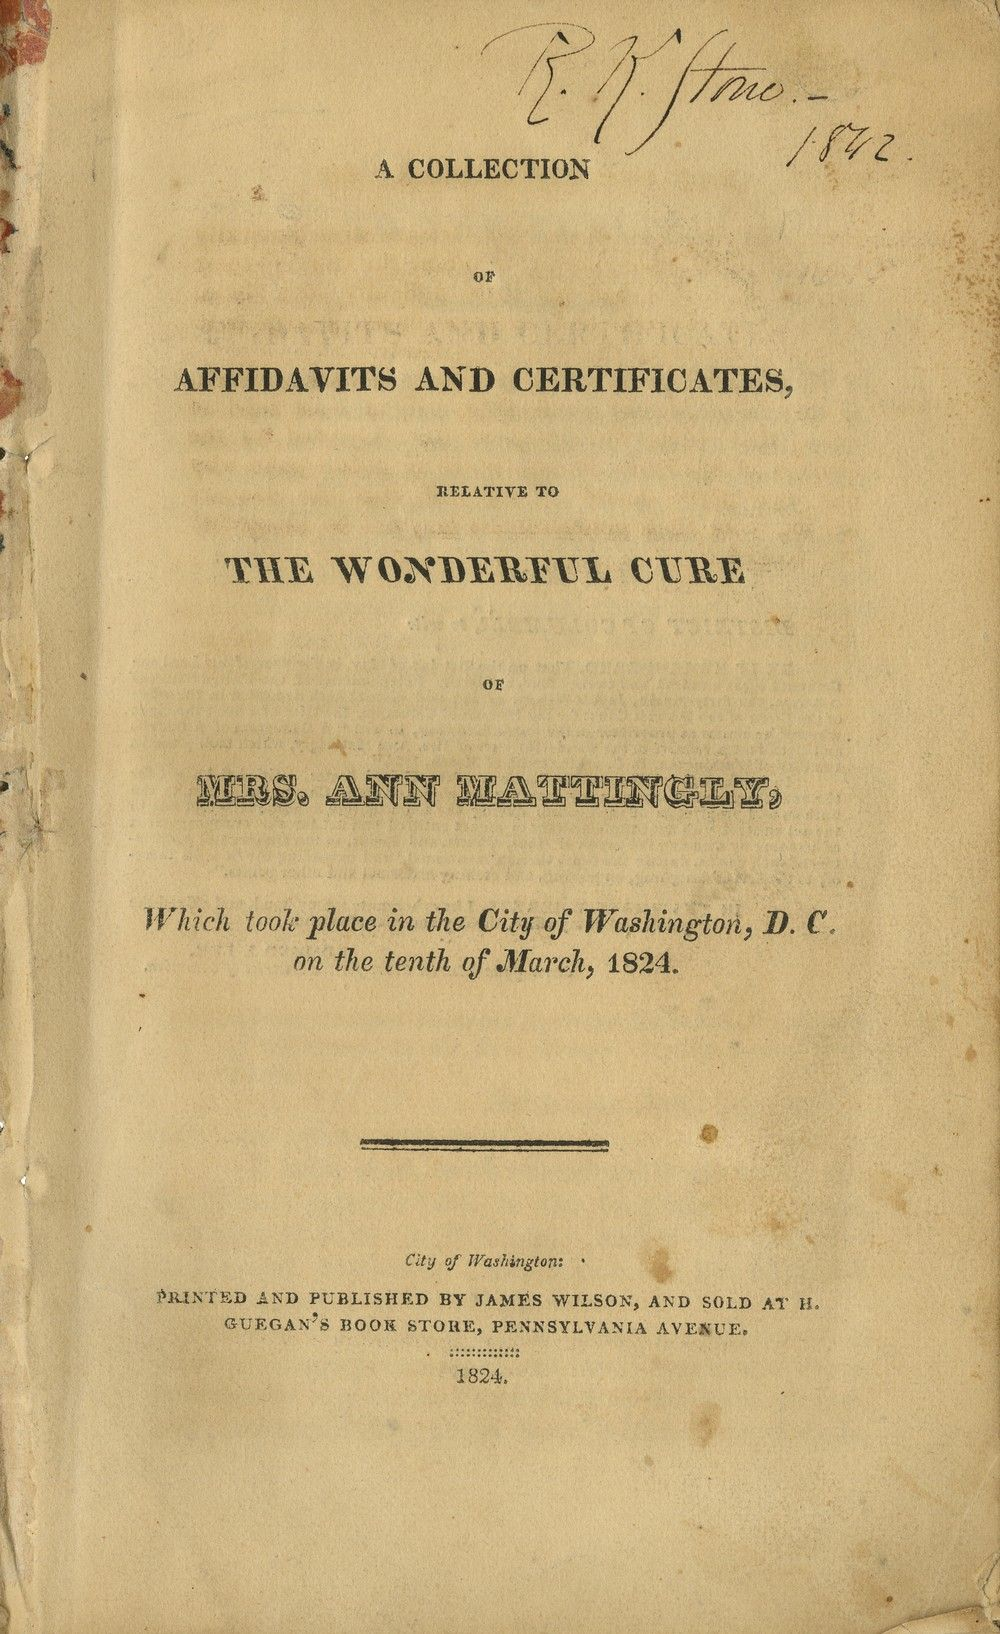 Abraham Lincoln's Family Physician, Robert K. Stone, Signed 1842 Book About a Miraculous Cure